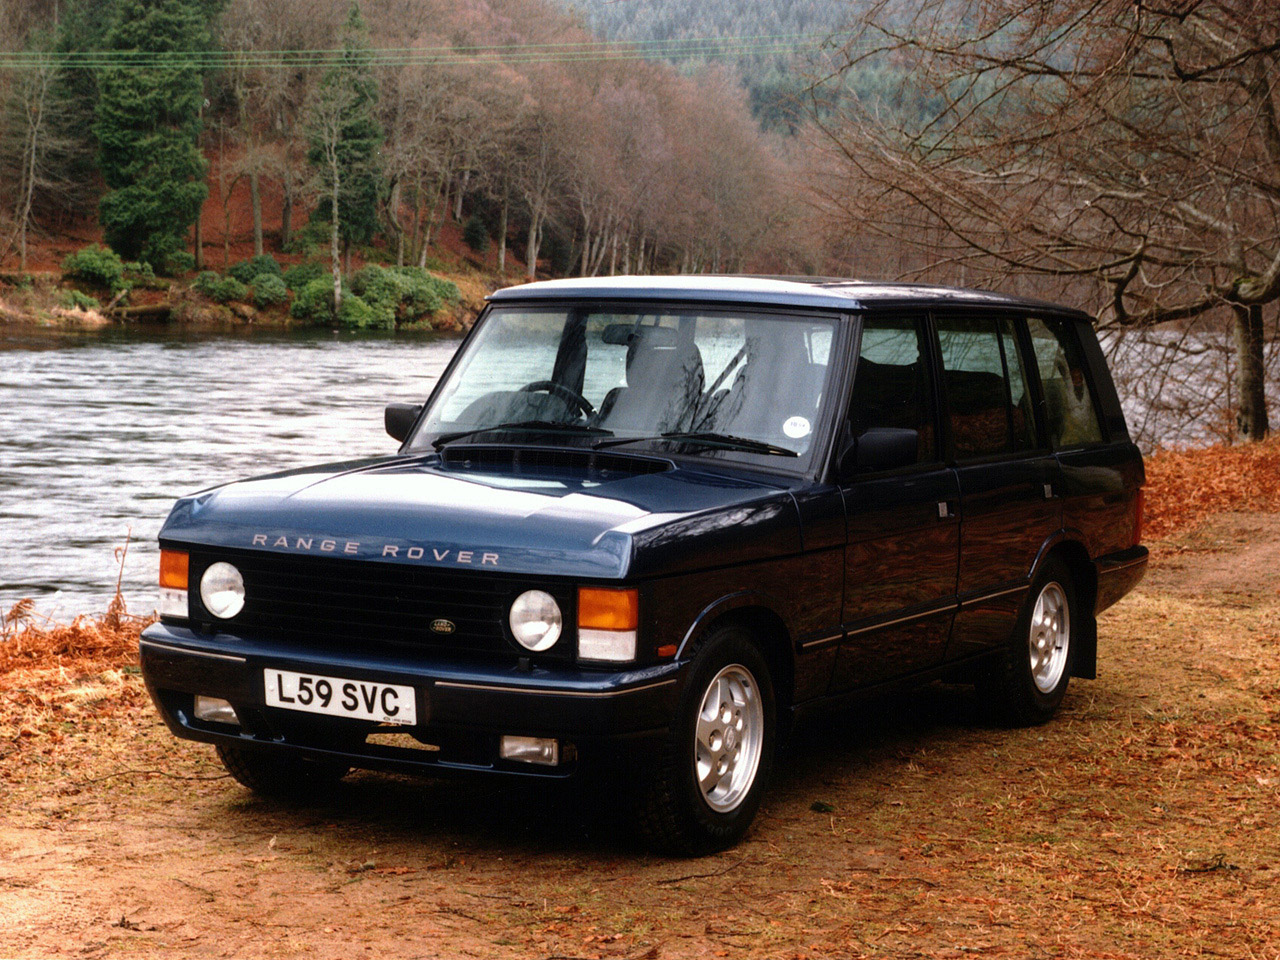 https://westcoastautoenthusiasts.files.wordpress.com/2013/08/gen1-range-rover.jpg